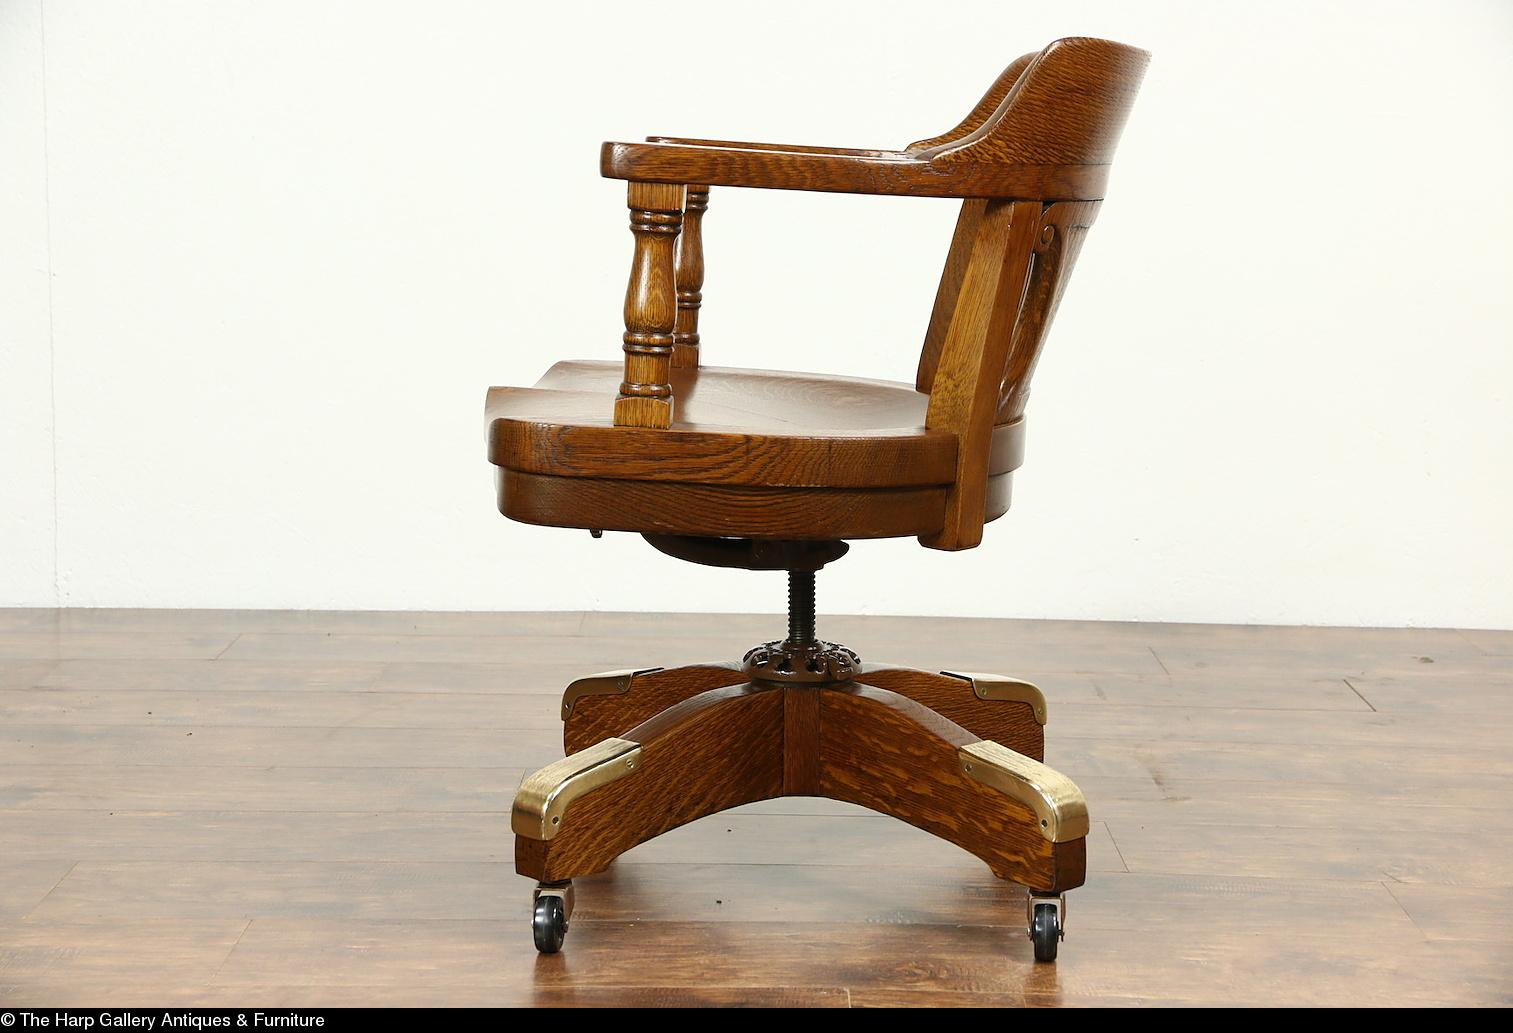 Roll over Large image to magnify, click Large image to zoom - Swivel Oak Antique Adjustable 1915 Desk Chair, Milwaukee